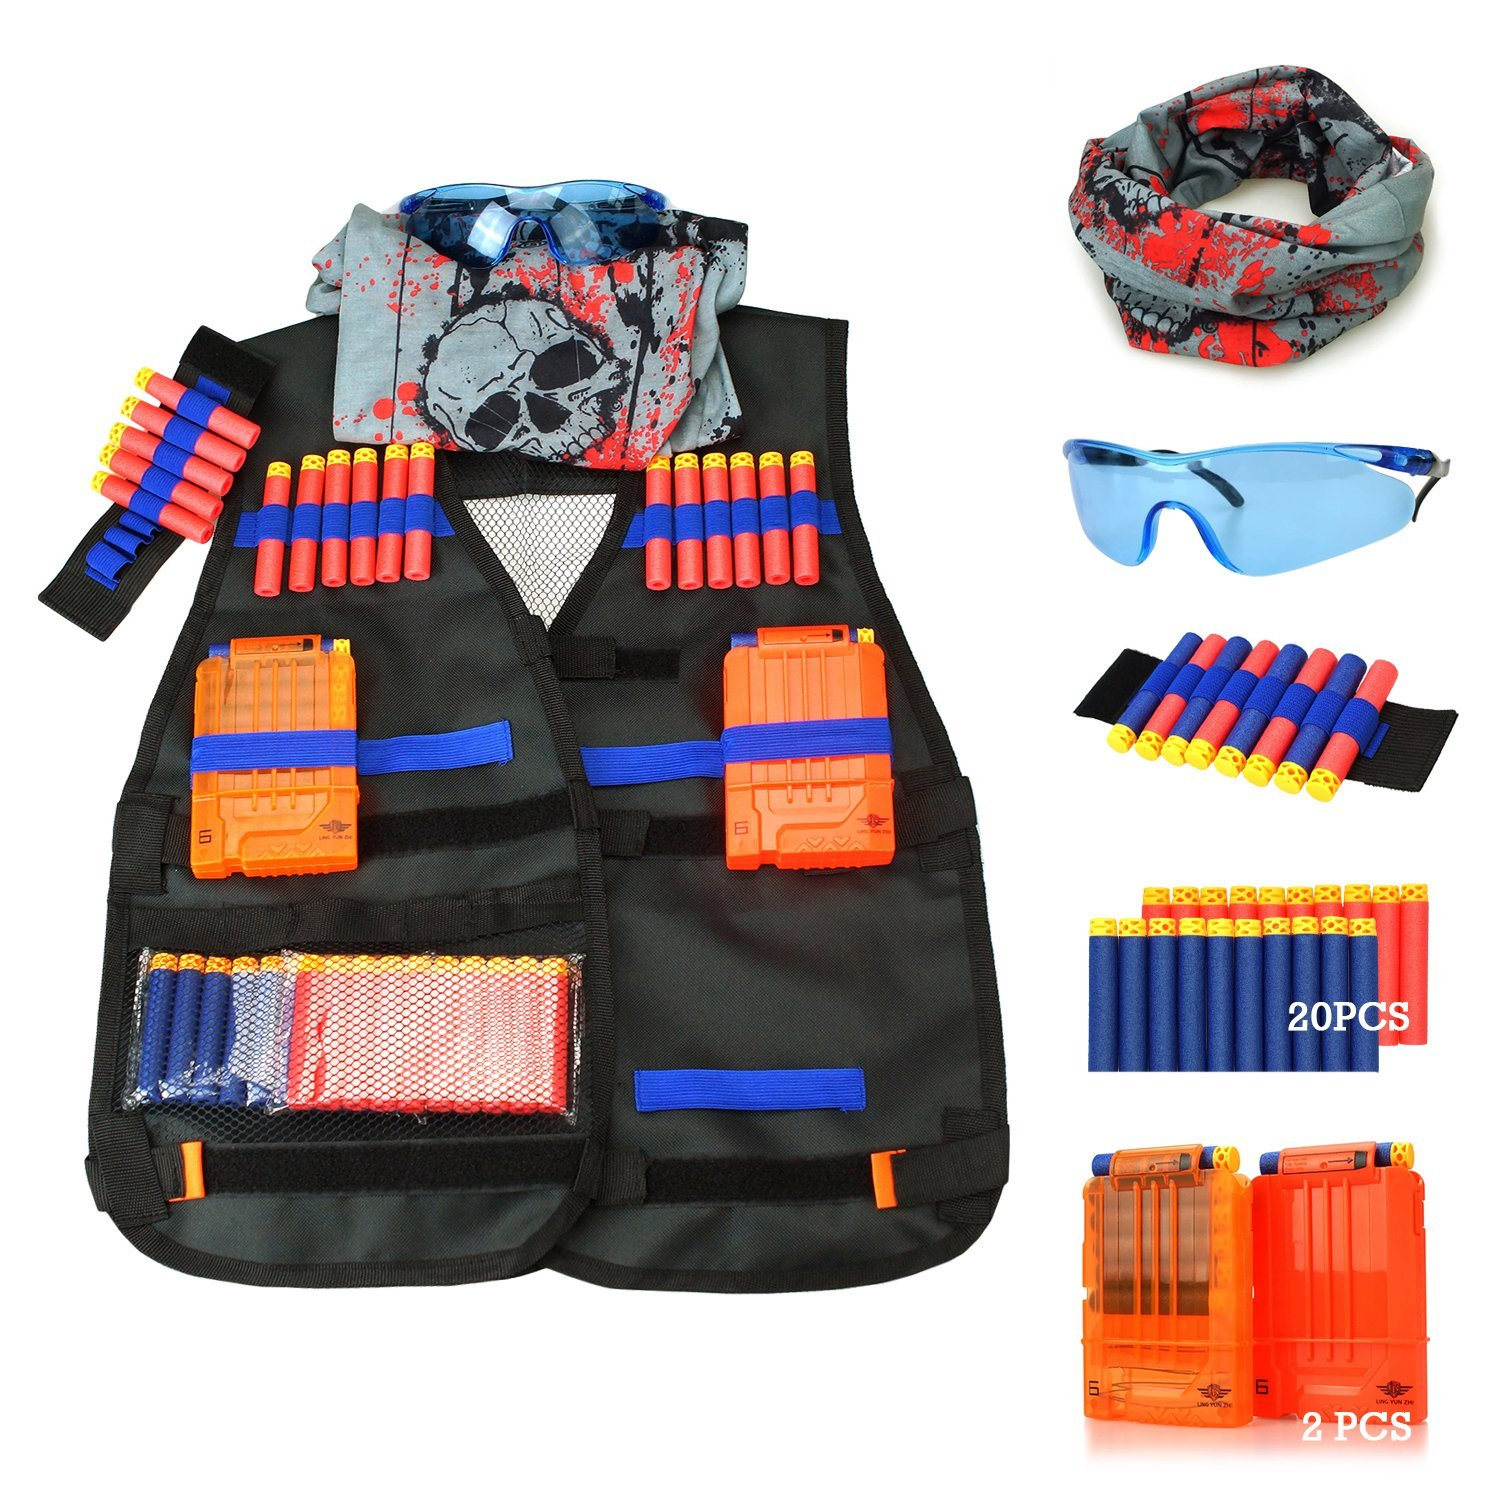 nerf guns 2015 sniper - Google Search